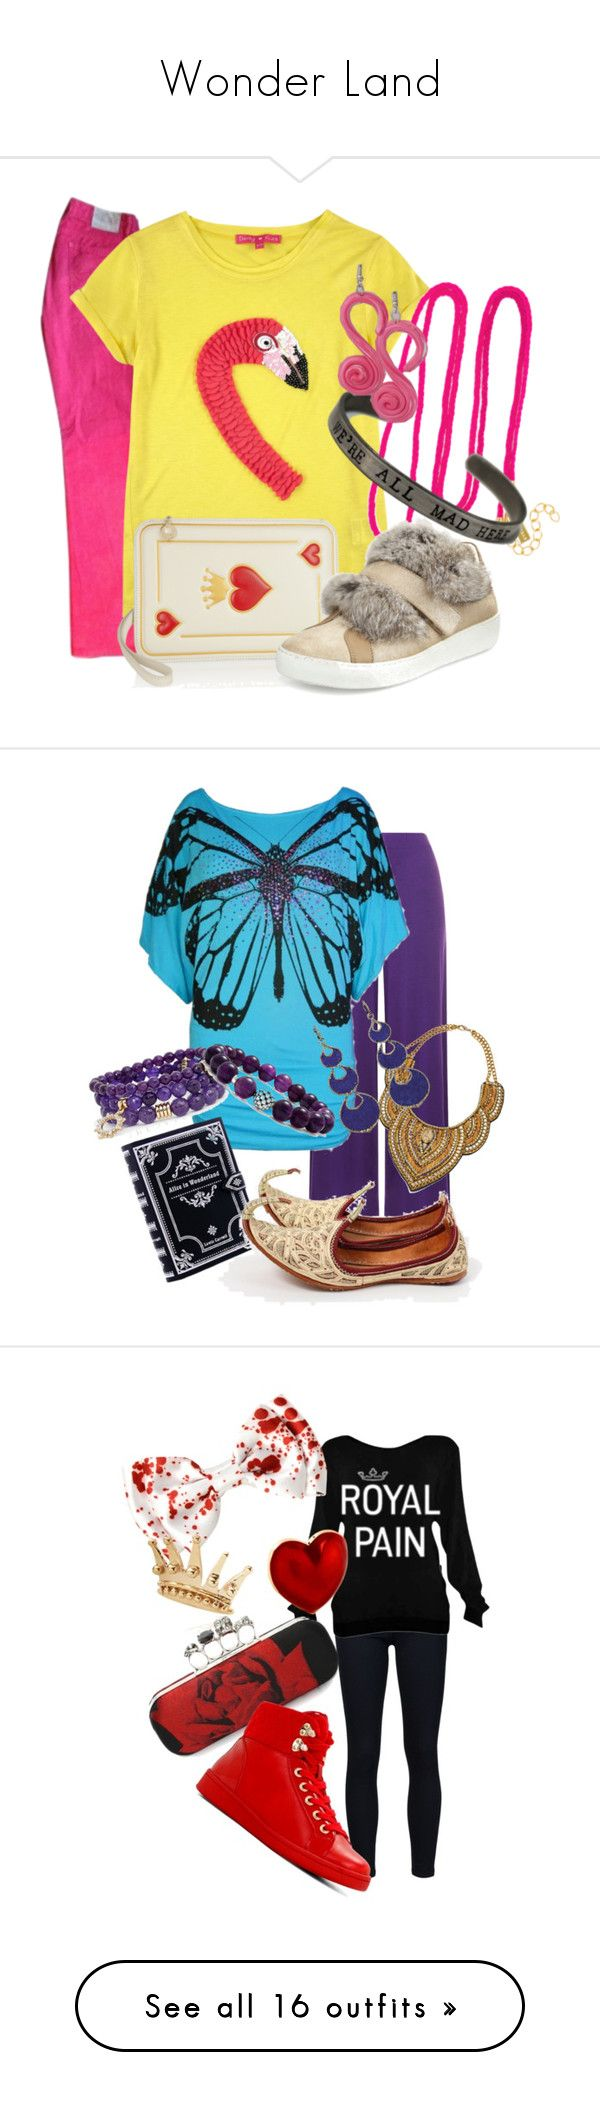 Wonder Land by amber-south-brink on Polyvore featuring Maje, Derhy, BaubleBar, Charlotte Olympia, Cotton Candy, Moncler, WearAll, Annoushka, Sequin and Lagos